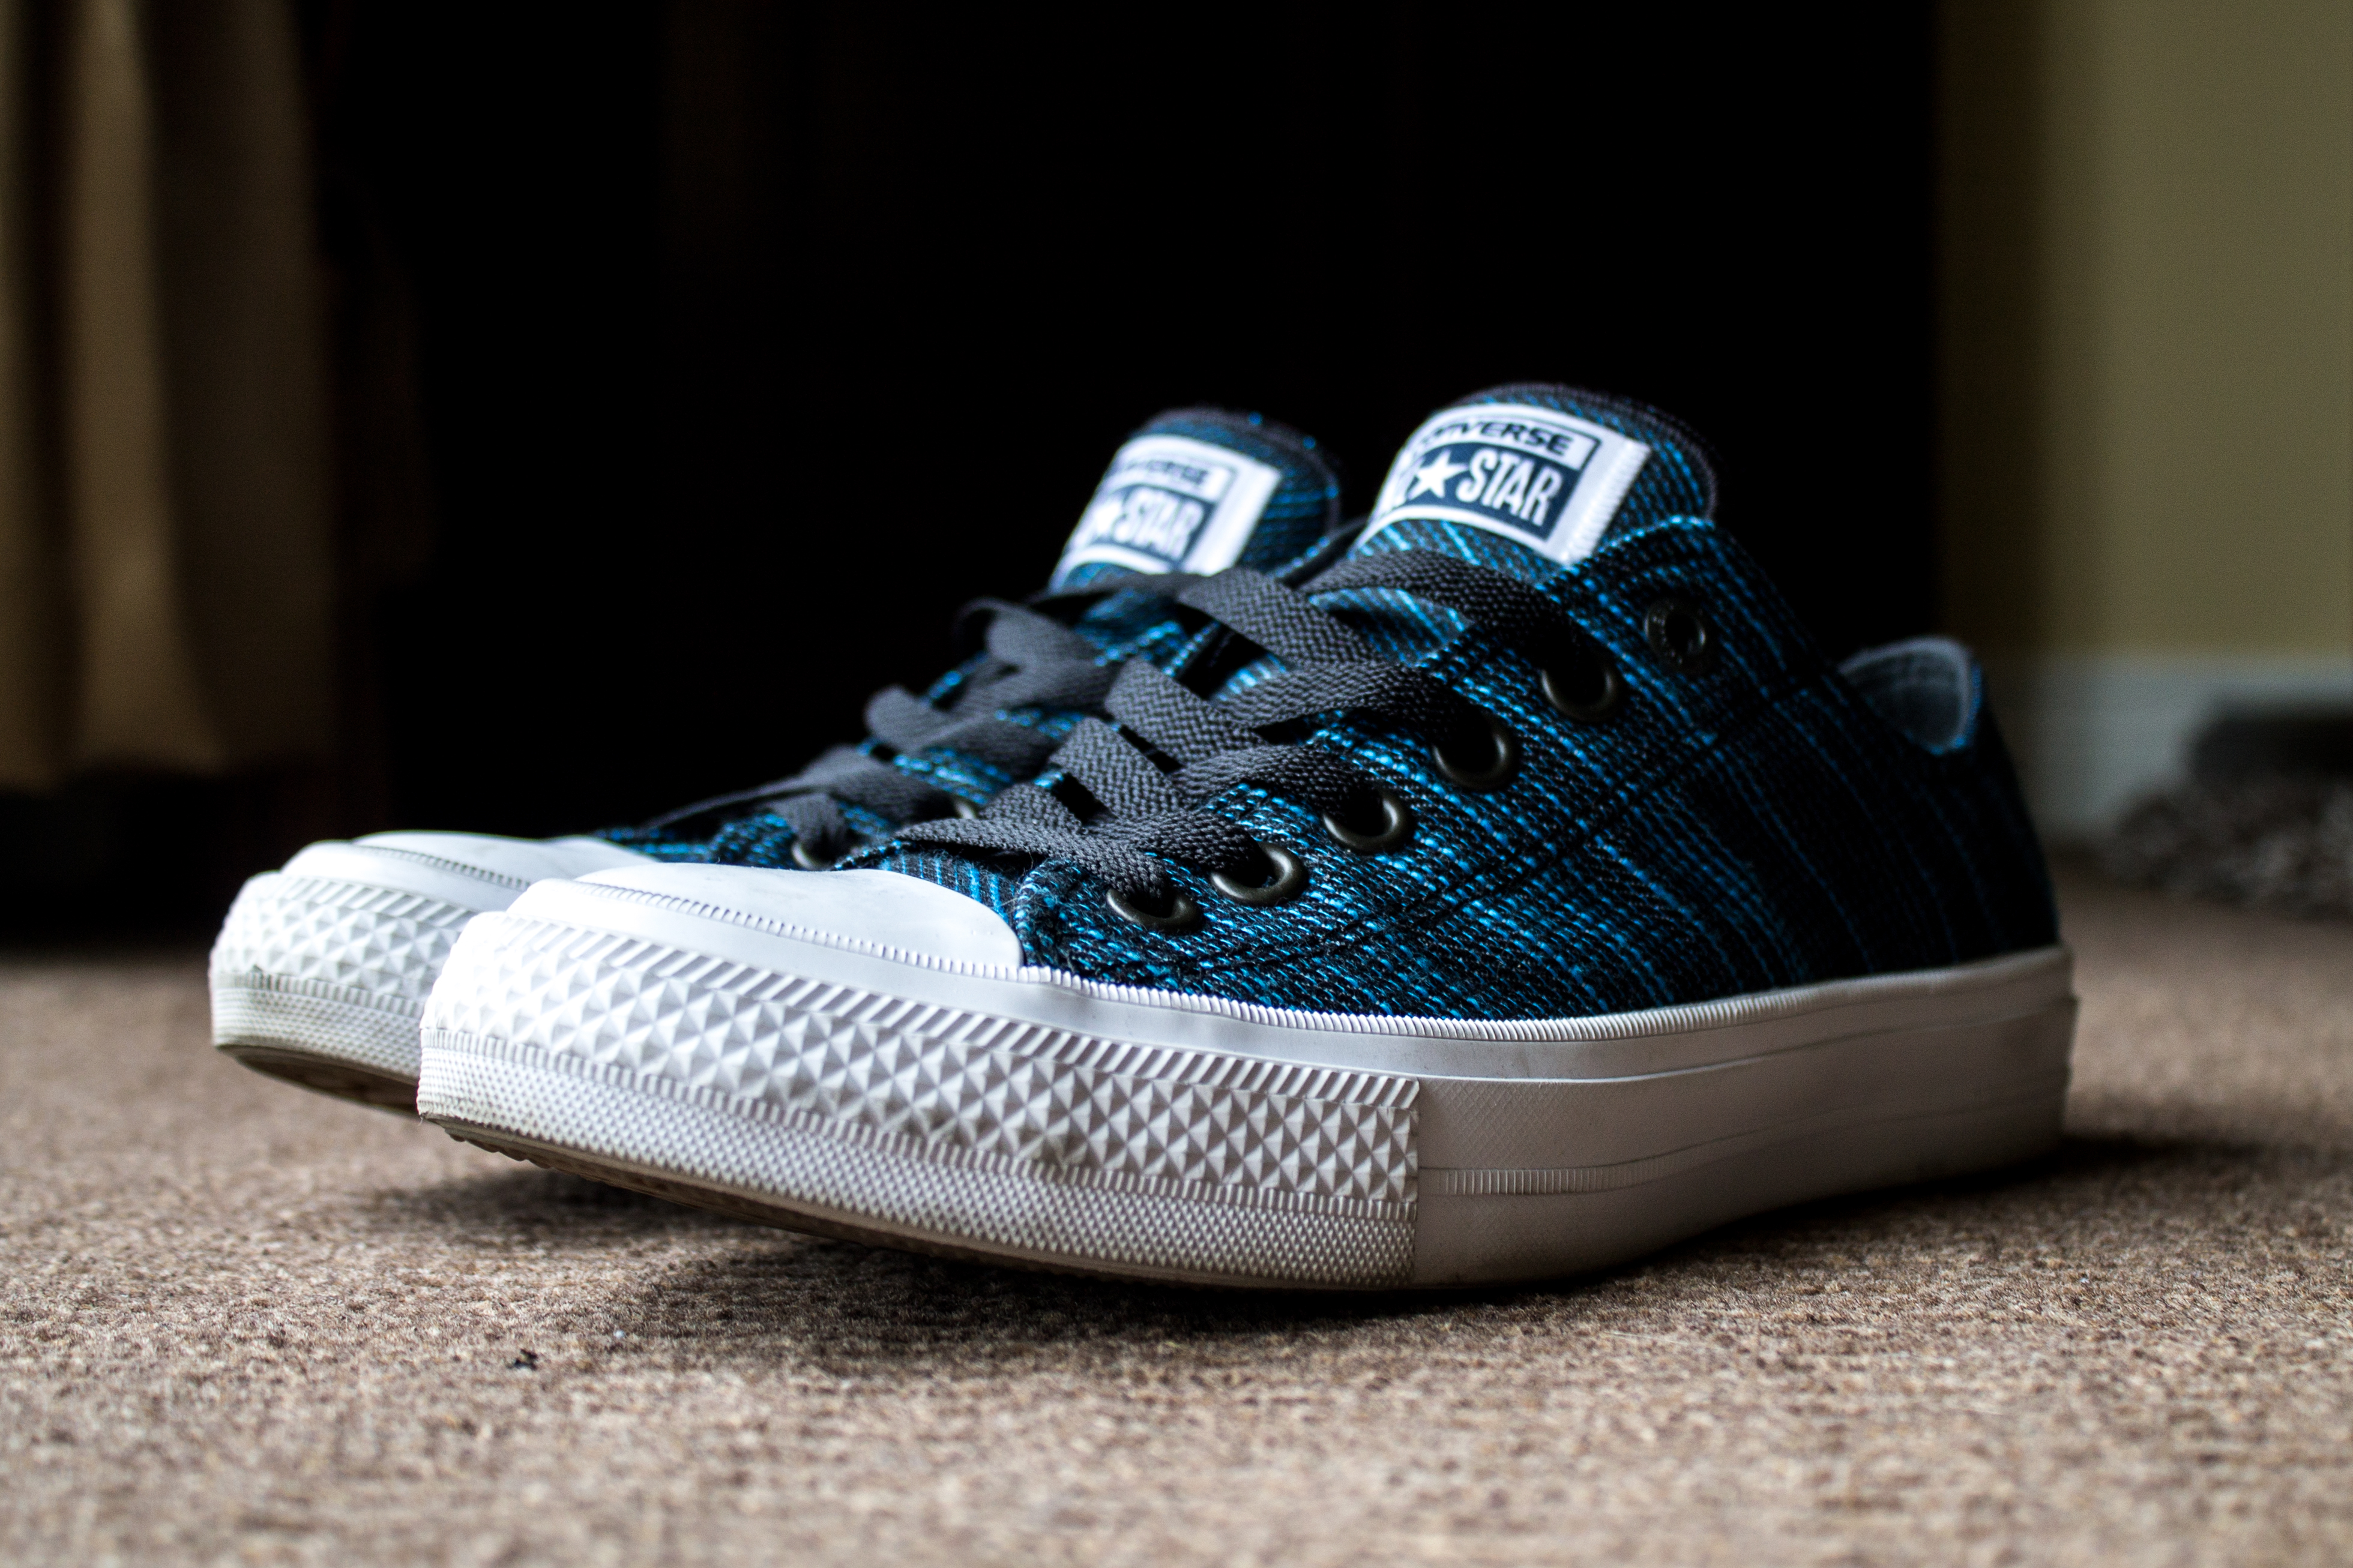 Size Chart Shoes Converse: Free stock photo of black blue canvas shoes,Chart